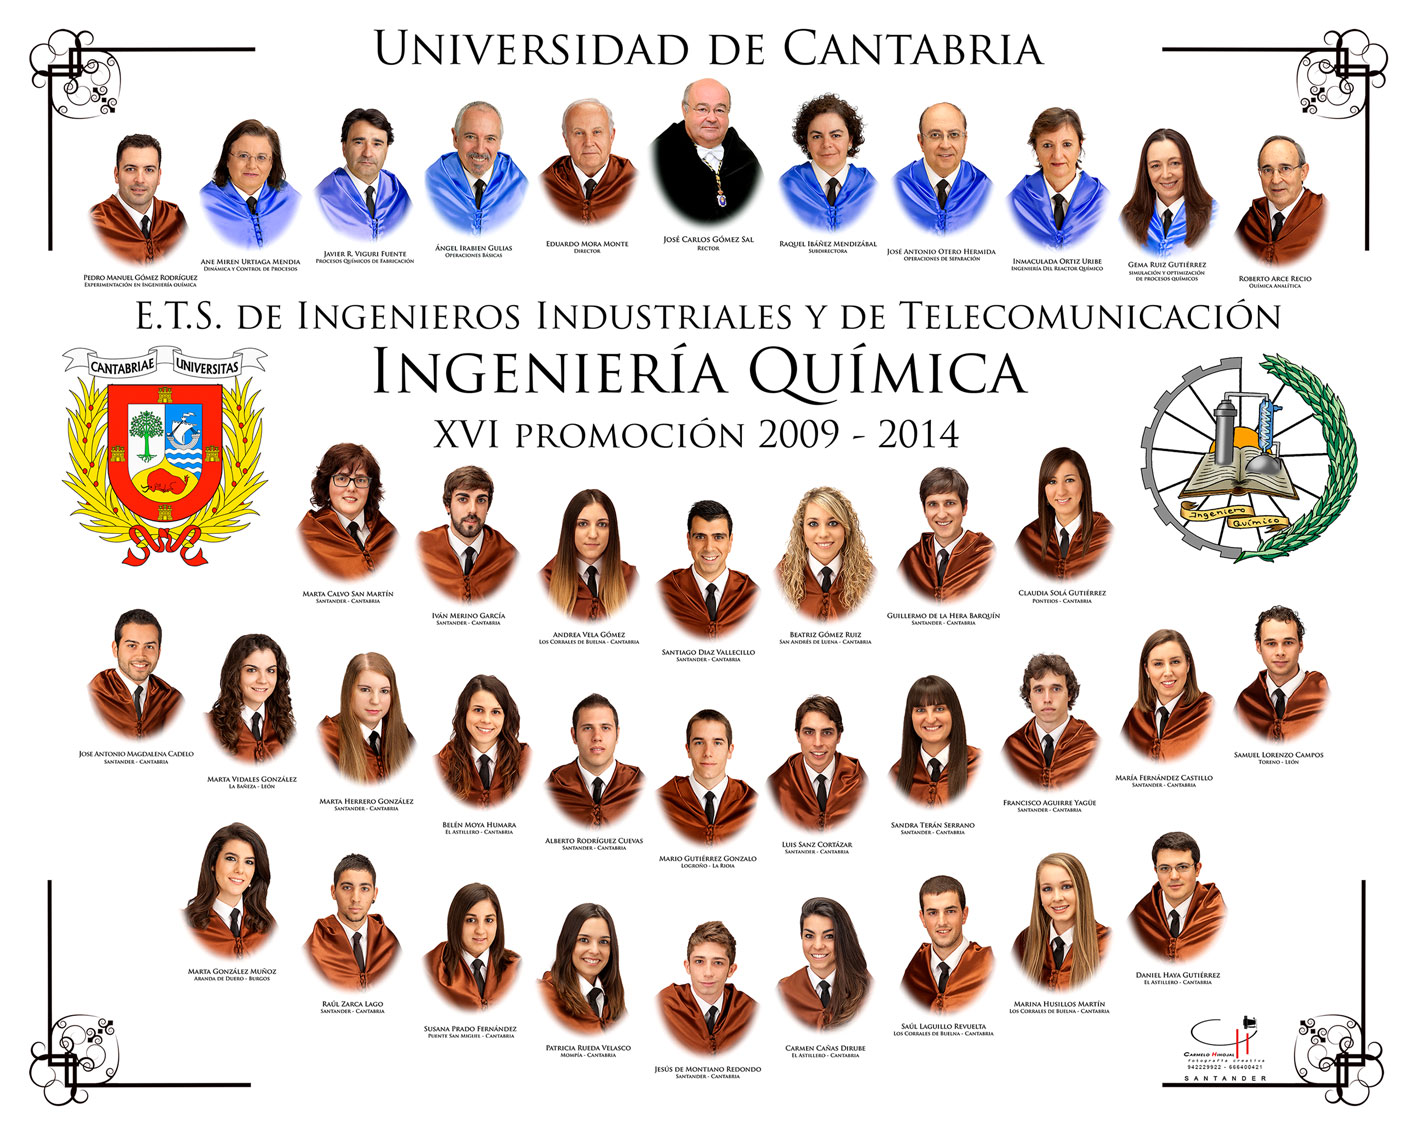 universidadcantabriaorlaingenieriaquimicacolor